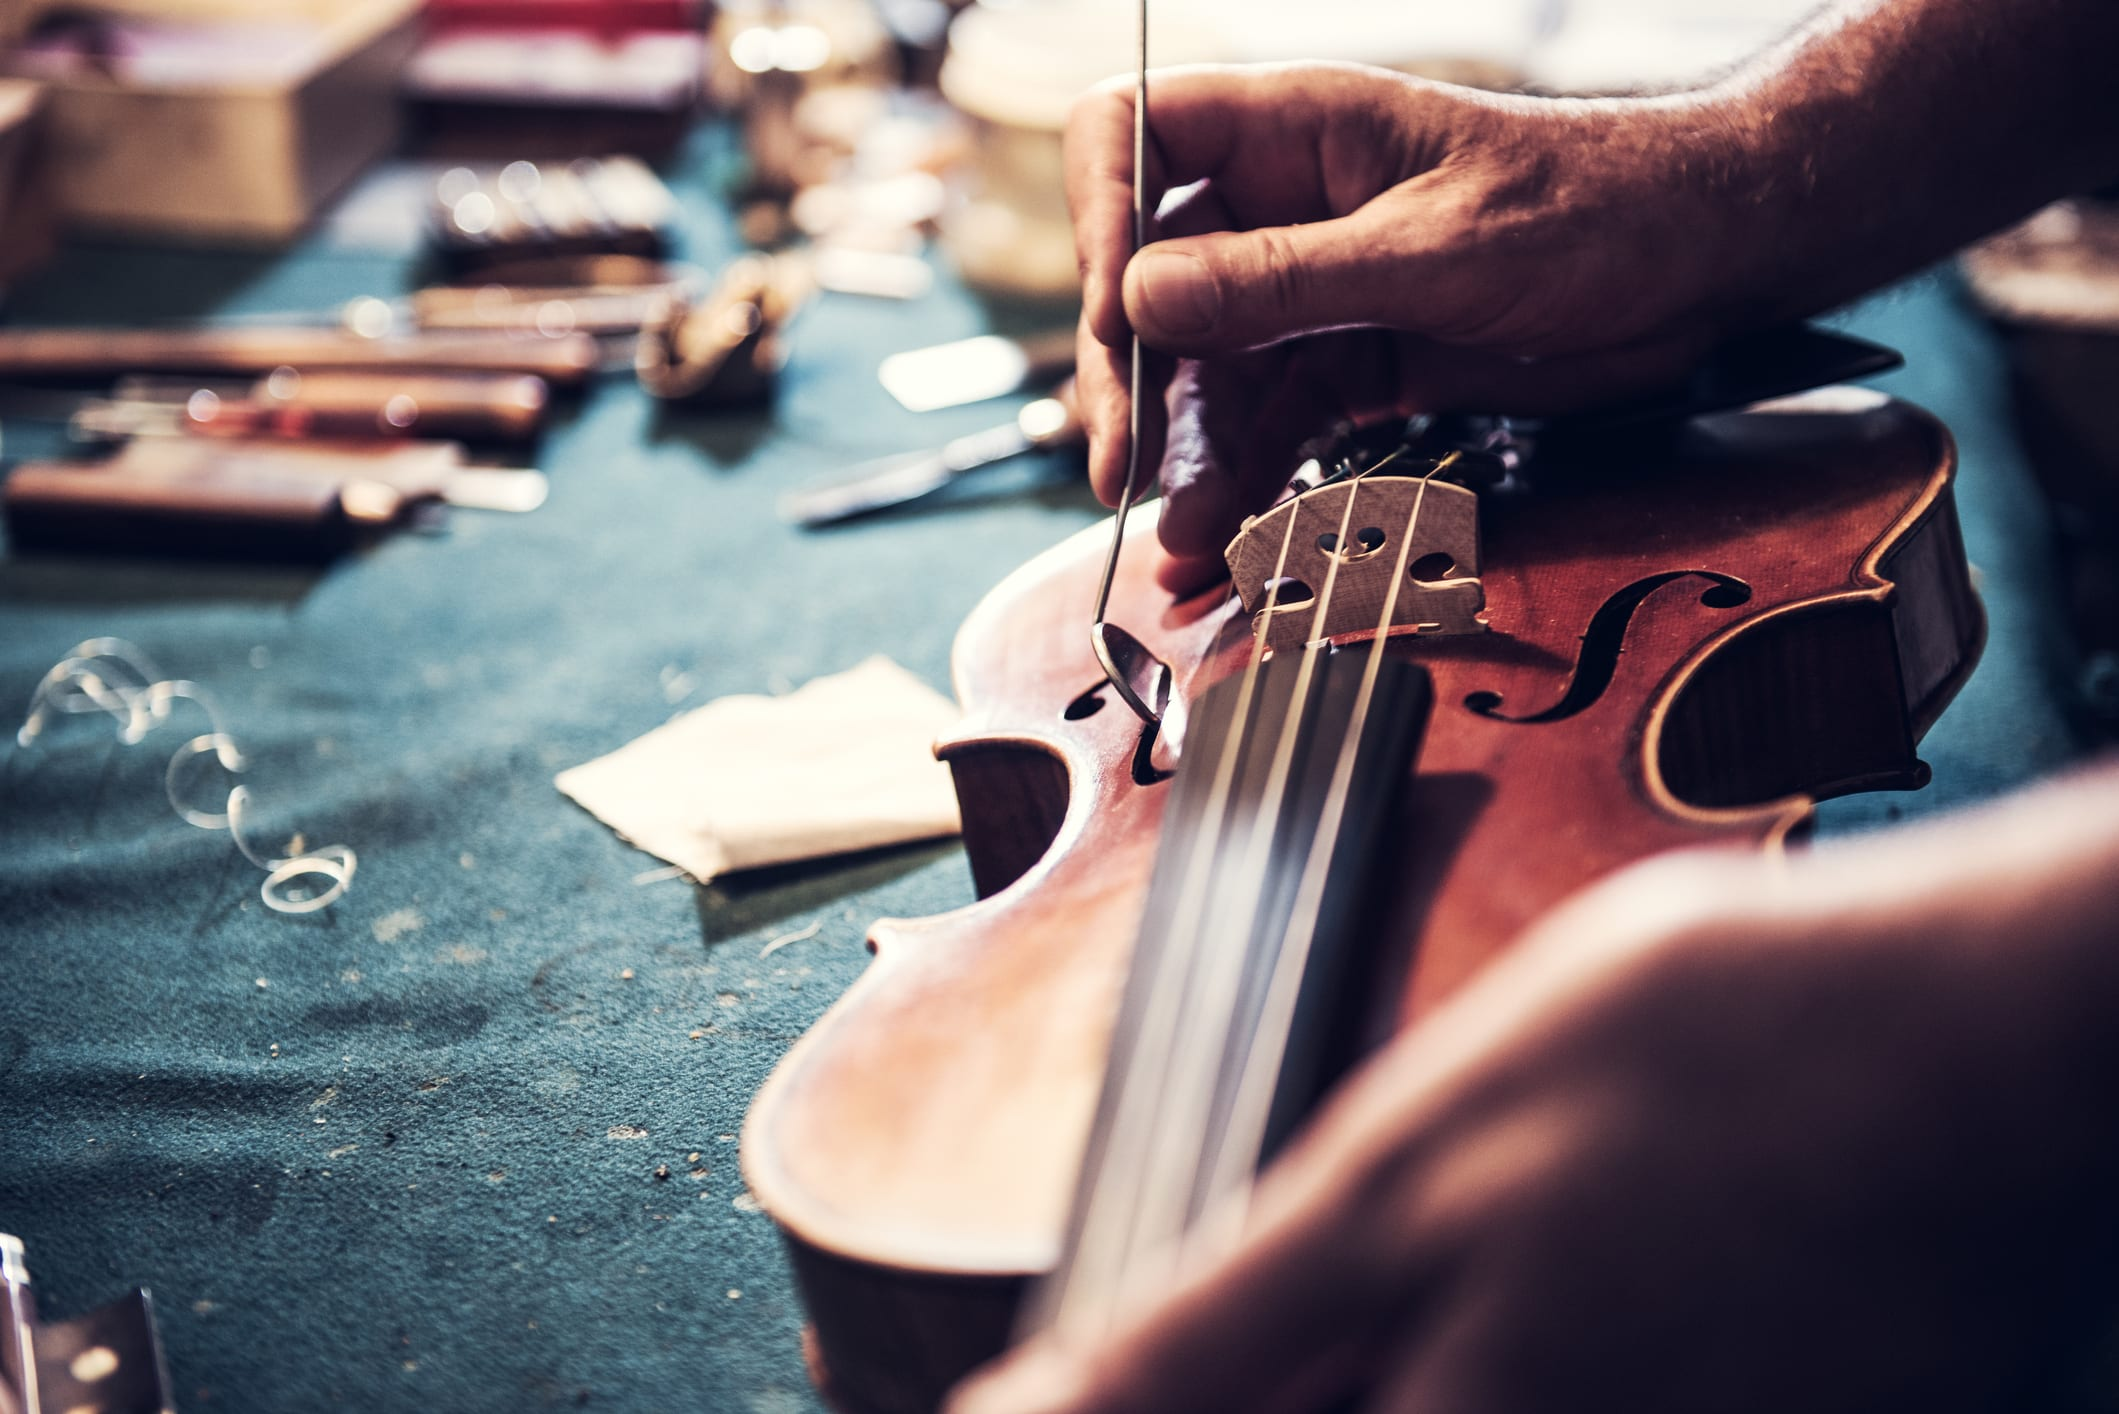 Portrait of senior entrepreneur working in his instrument repair shop, taking care of violins and other music instruments. Experienced senior is using his skills to repair instruments